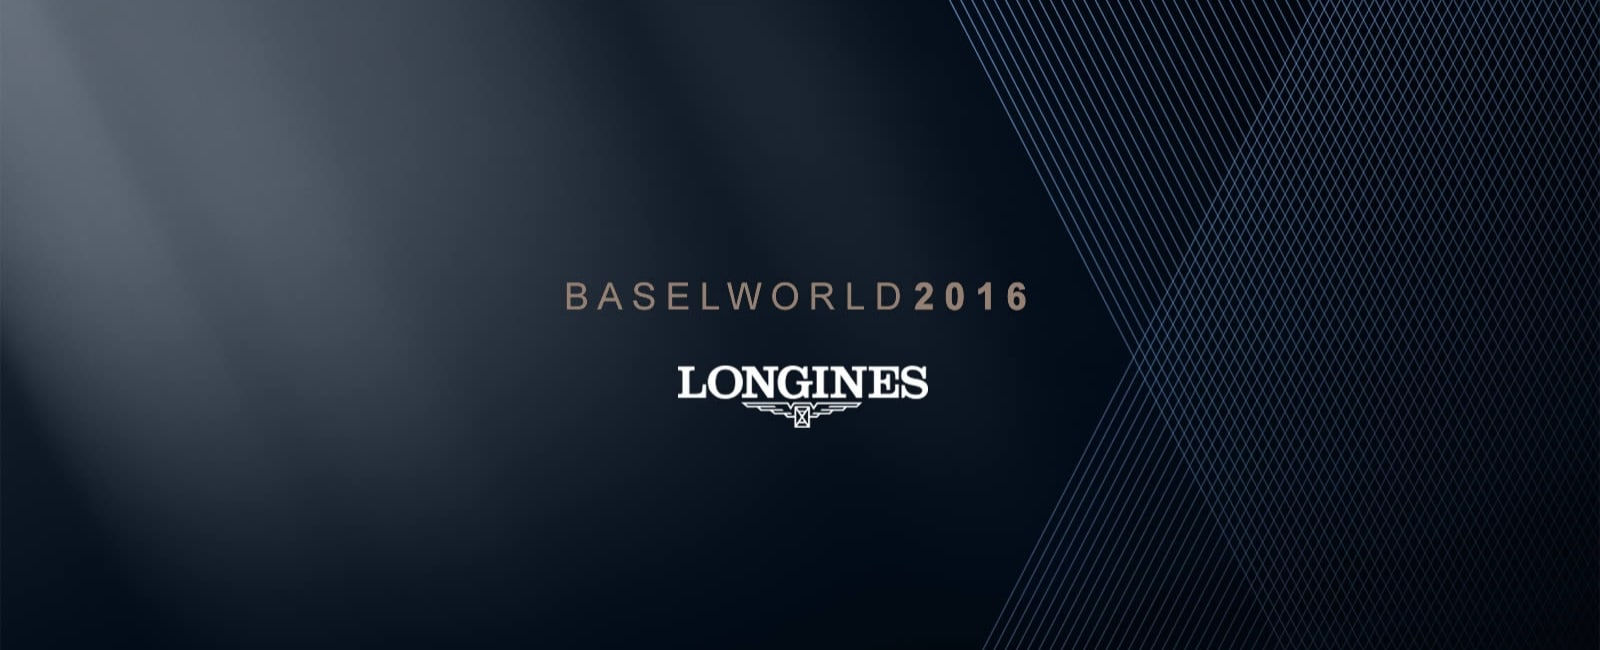 BaselWorld 2016;Baselfair;Novelties